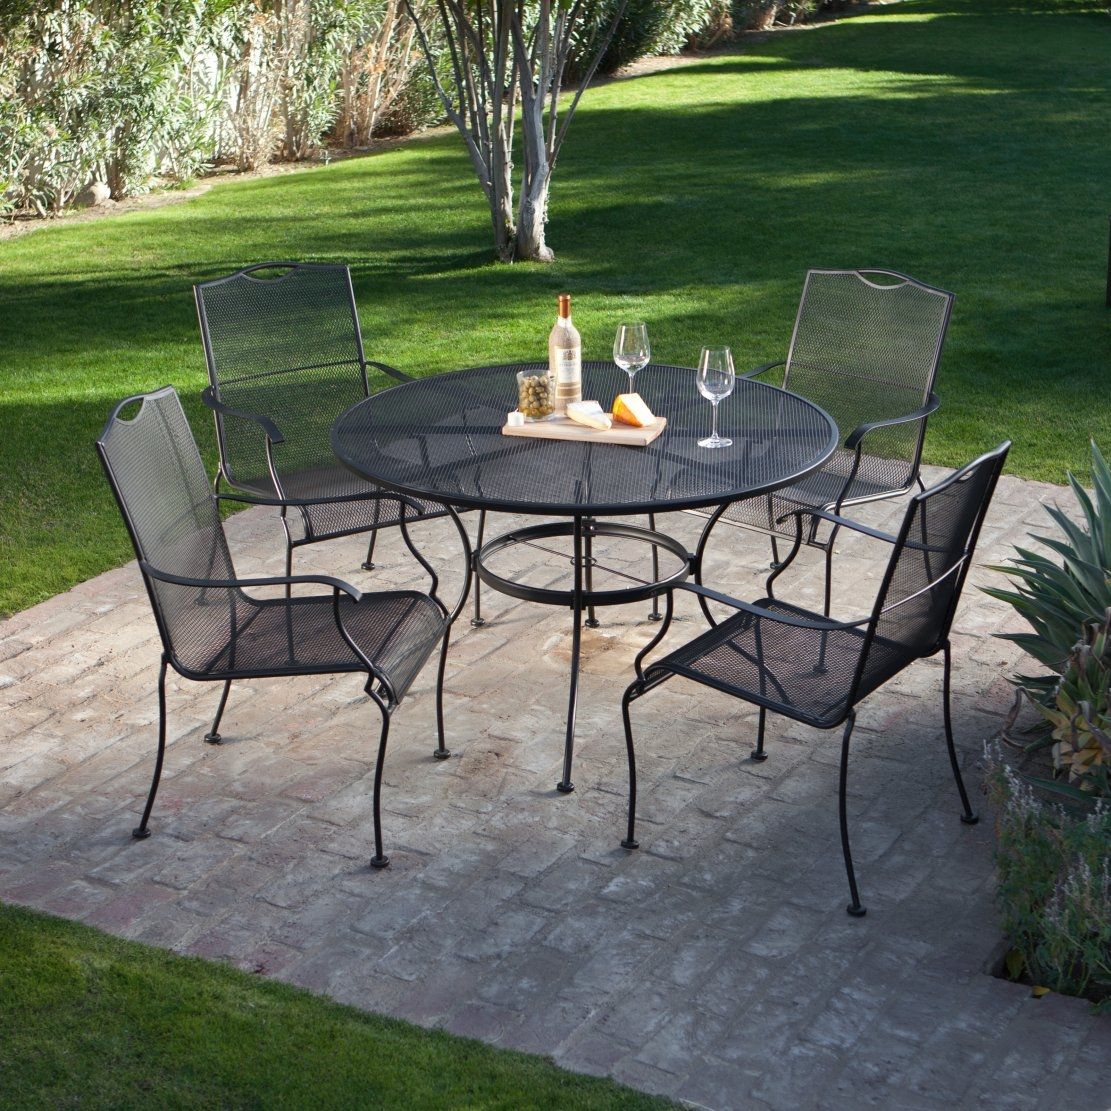 5-Piece Wrought Iron Patio Furniture Dining Set - Seats 4, WDS4S689 :  Big on comfort and smart in style, this 5-Piece Wrought Iron Patio Furniture Dining Set - Seats 4 - Seats 4 will grace your poolside or patio, bringing even more enjoyment to cozy family dinners or casual meals with friends. Characterized by a simple, yet elegant design, clean lines, and textured black powder-coat finish that goes beautifully with most outdoor settings, these four chairs will envelop you in comfort all through the meal. This micro mesh table, also in a textured black powder-coat finish, goes beautifully with most outdoor settings. It's 48 inches around to comfortably accommodate the four chairs. It's even equipped with an umbrella hole, so it's ready for a patio umbrella for those particularly hot days. 1-year residential and commercial warranty;     Chairs require no assembly, table requires minor assembly.